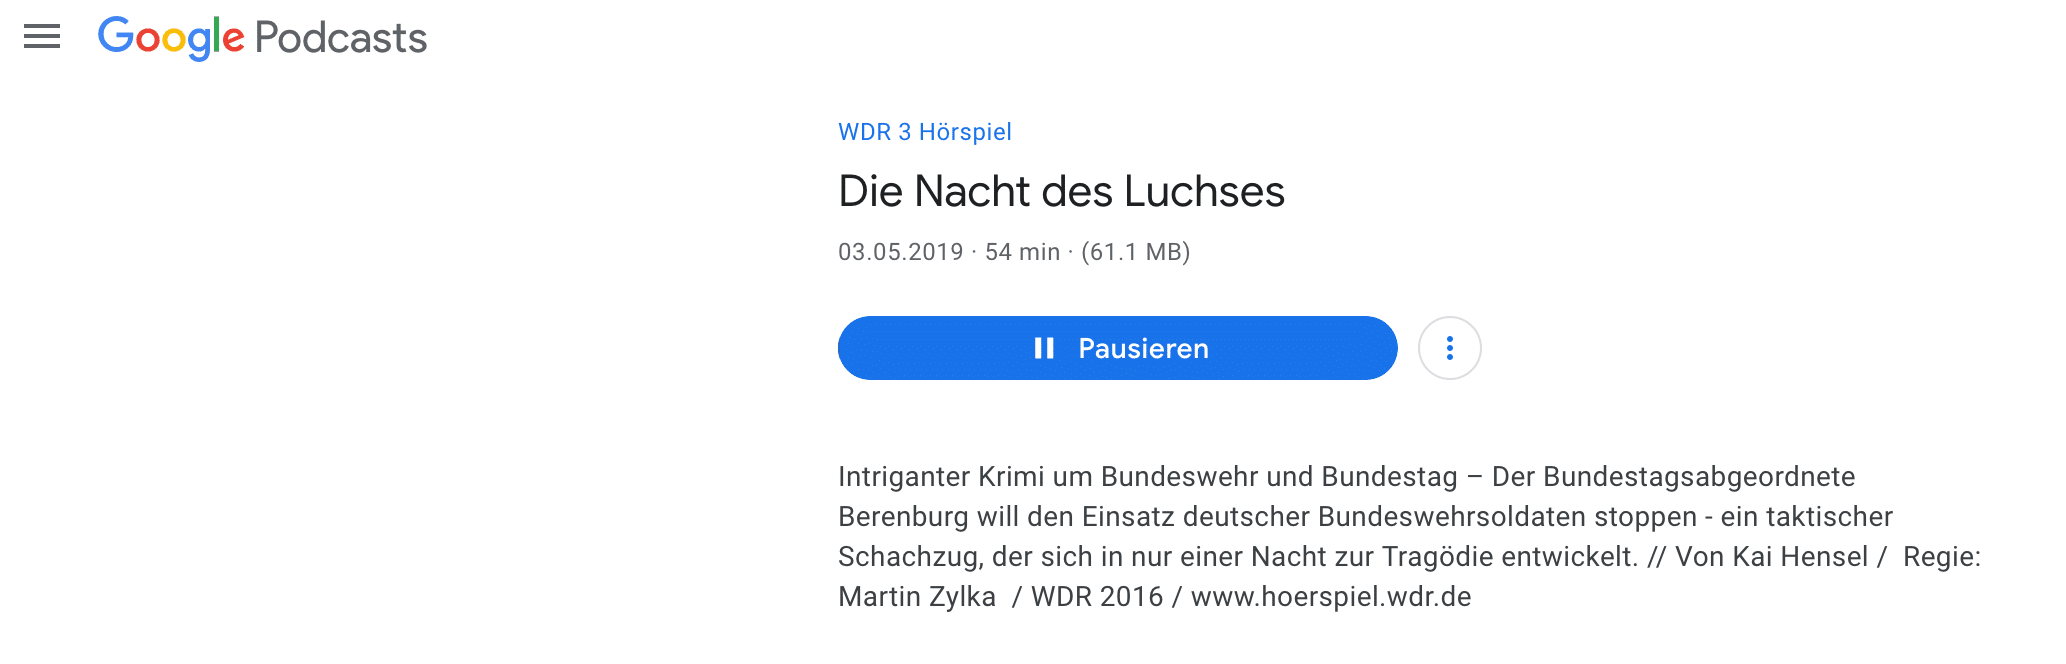 Google Podcast in SERPS